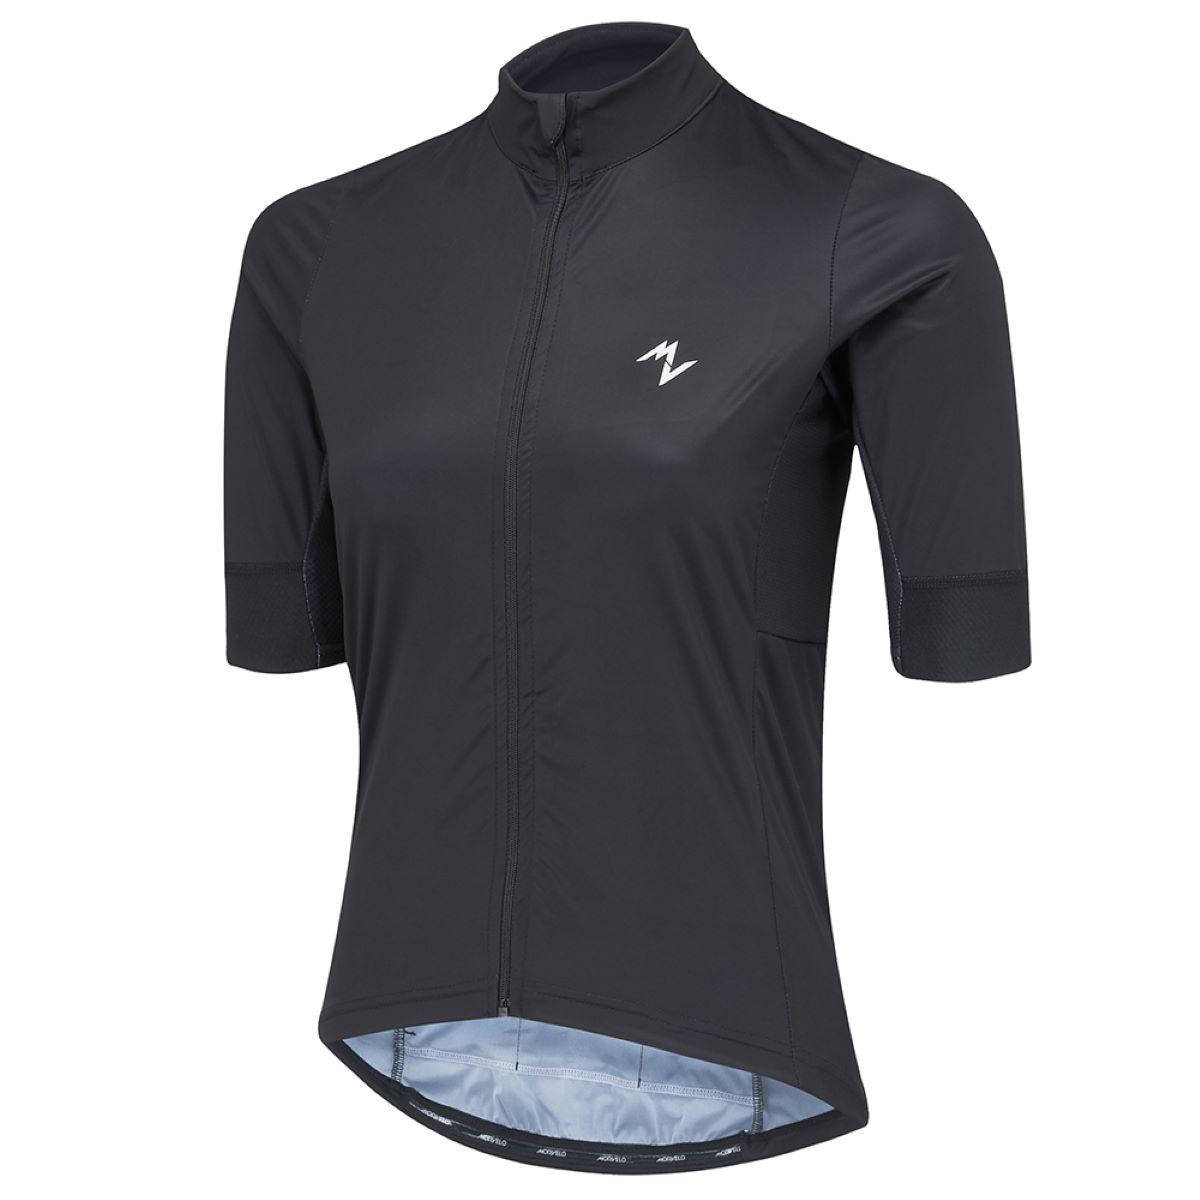 Maillot Femme Morvelo Stealth Stormshield Rain - XS Stealth Maillots